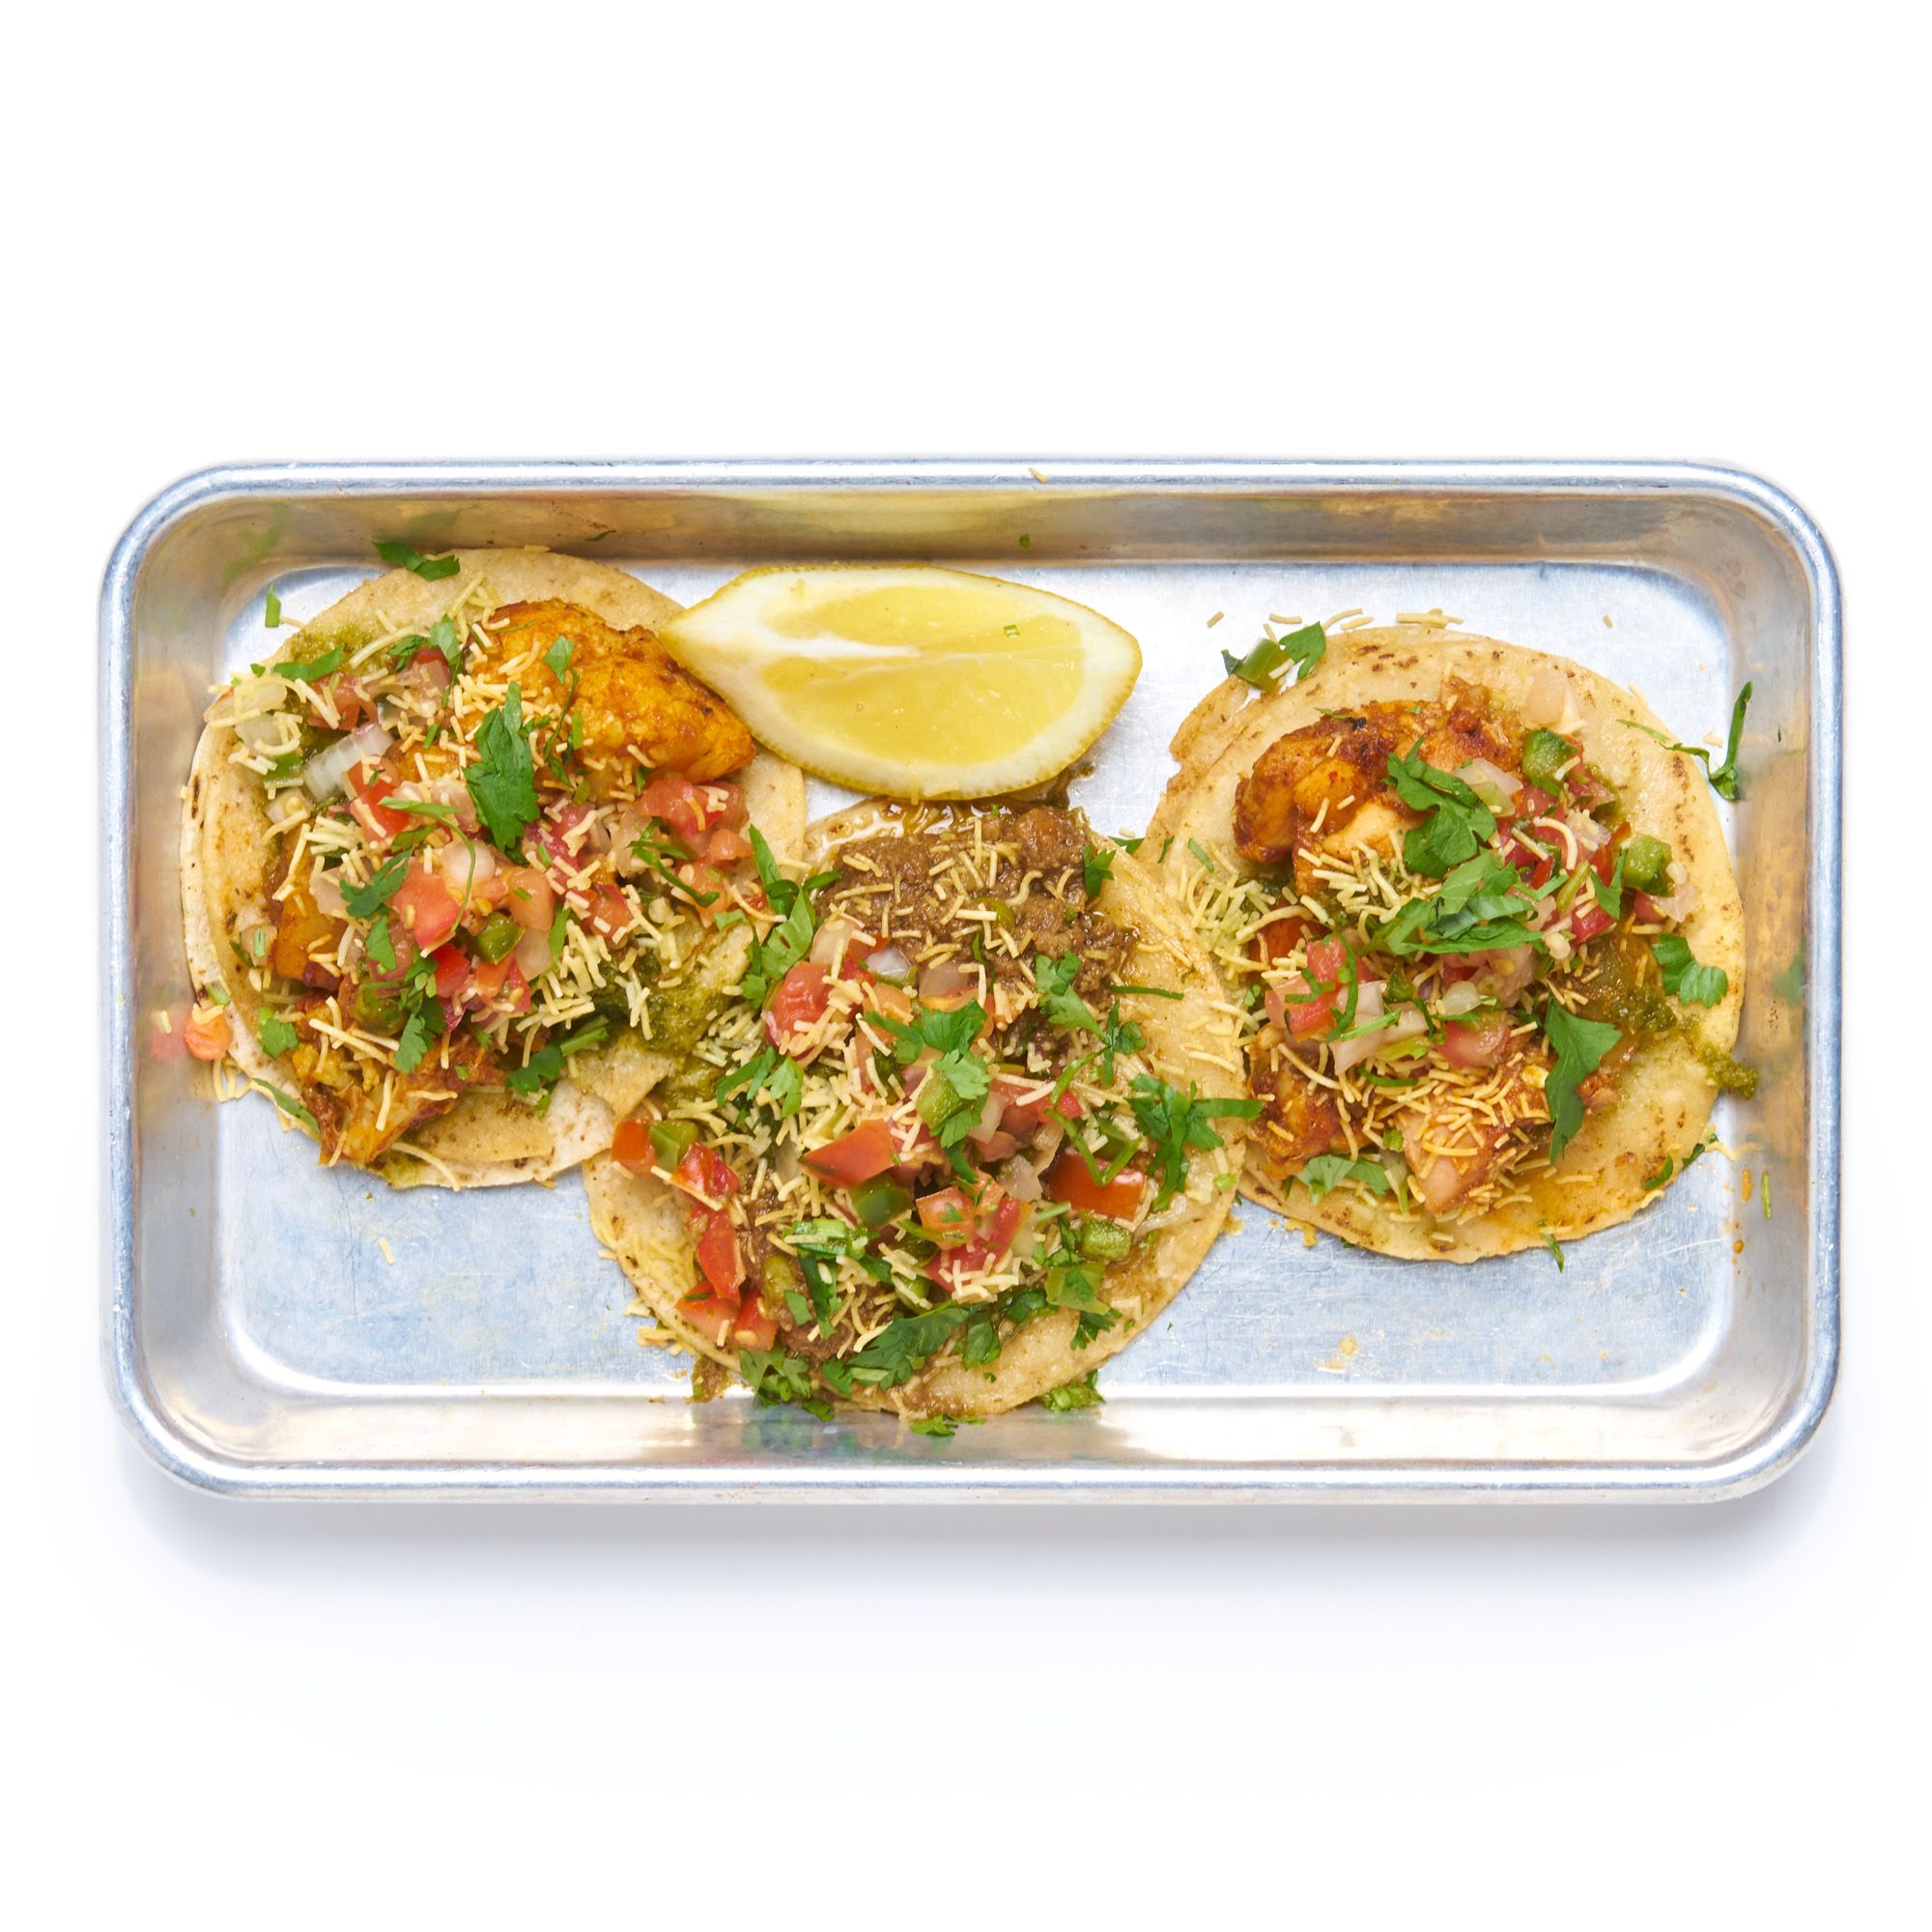 TACOS   corn tortillas, pico kachumber (GF)  choice of chicken or aloo gobi (V)